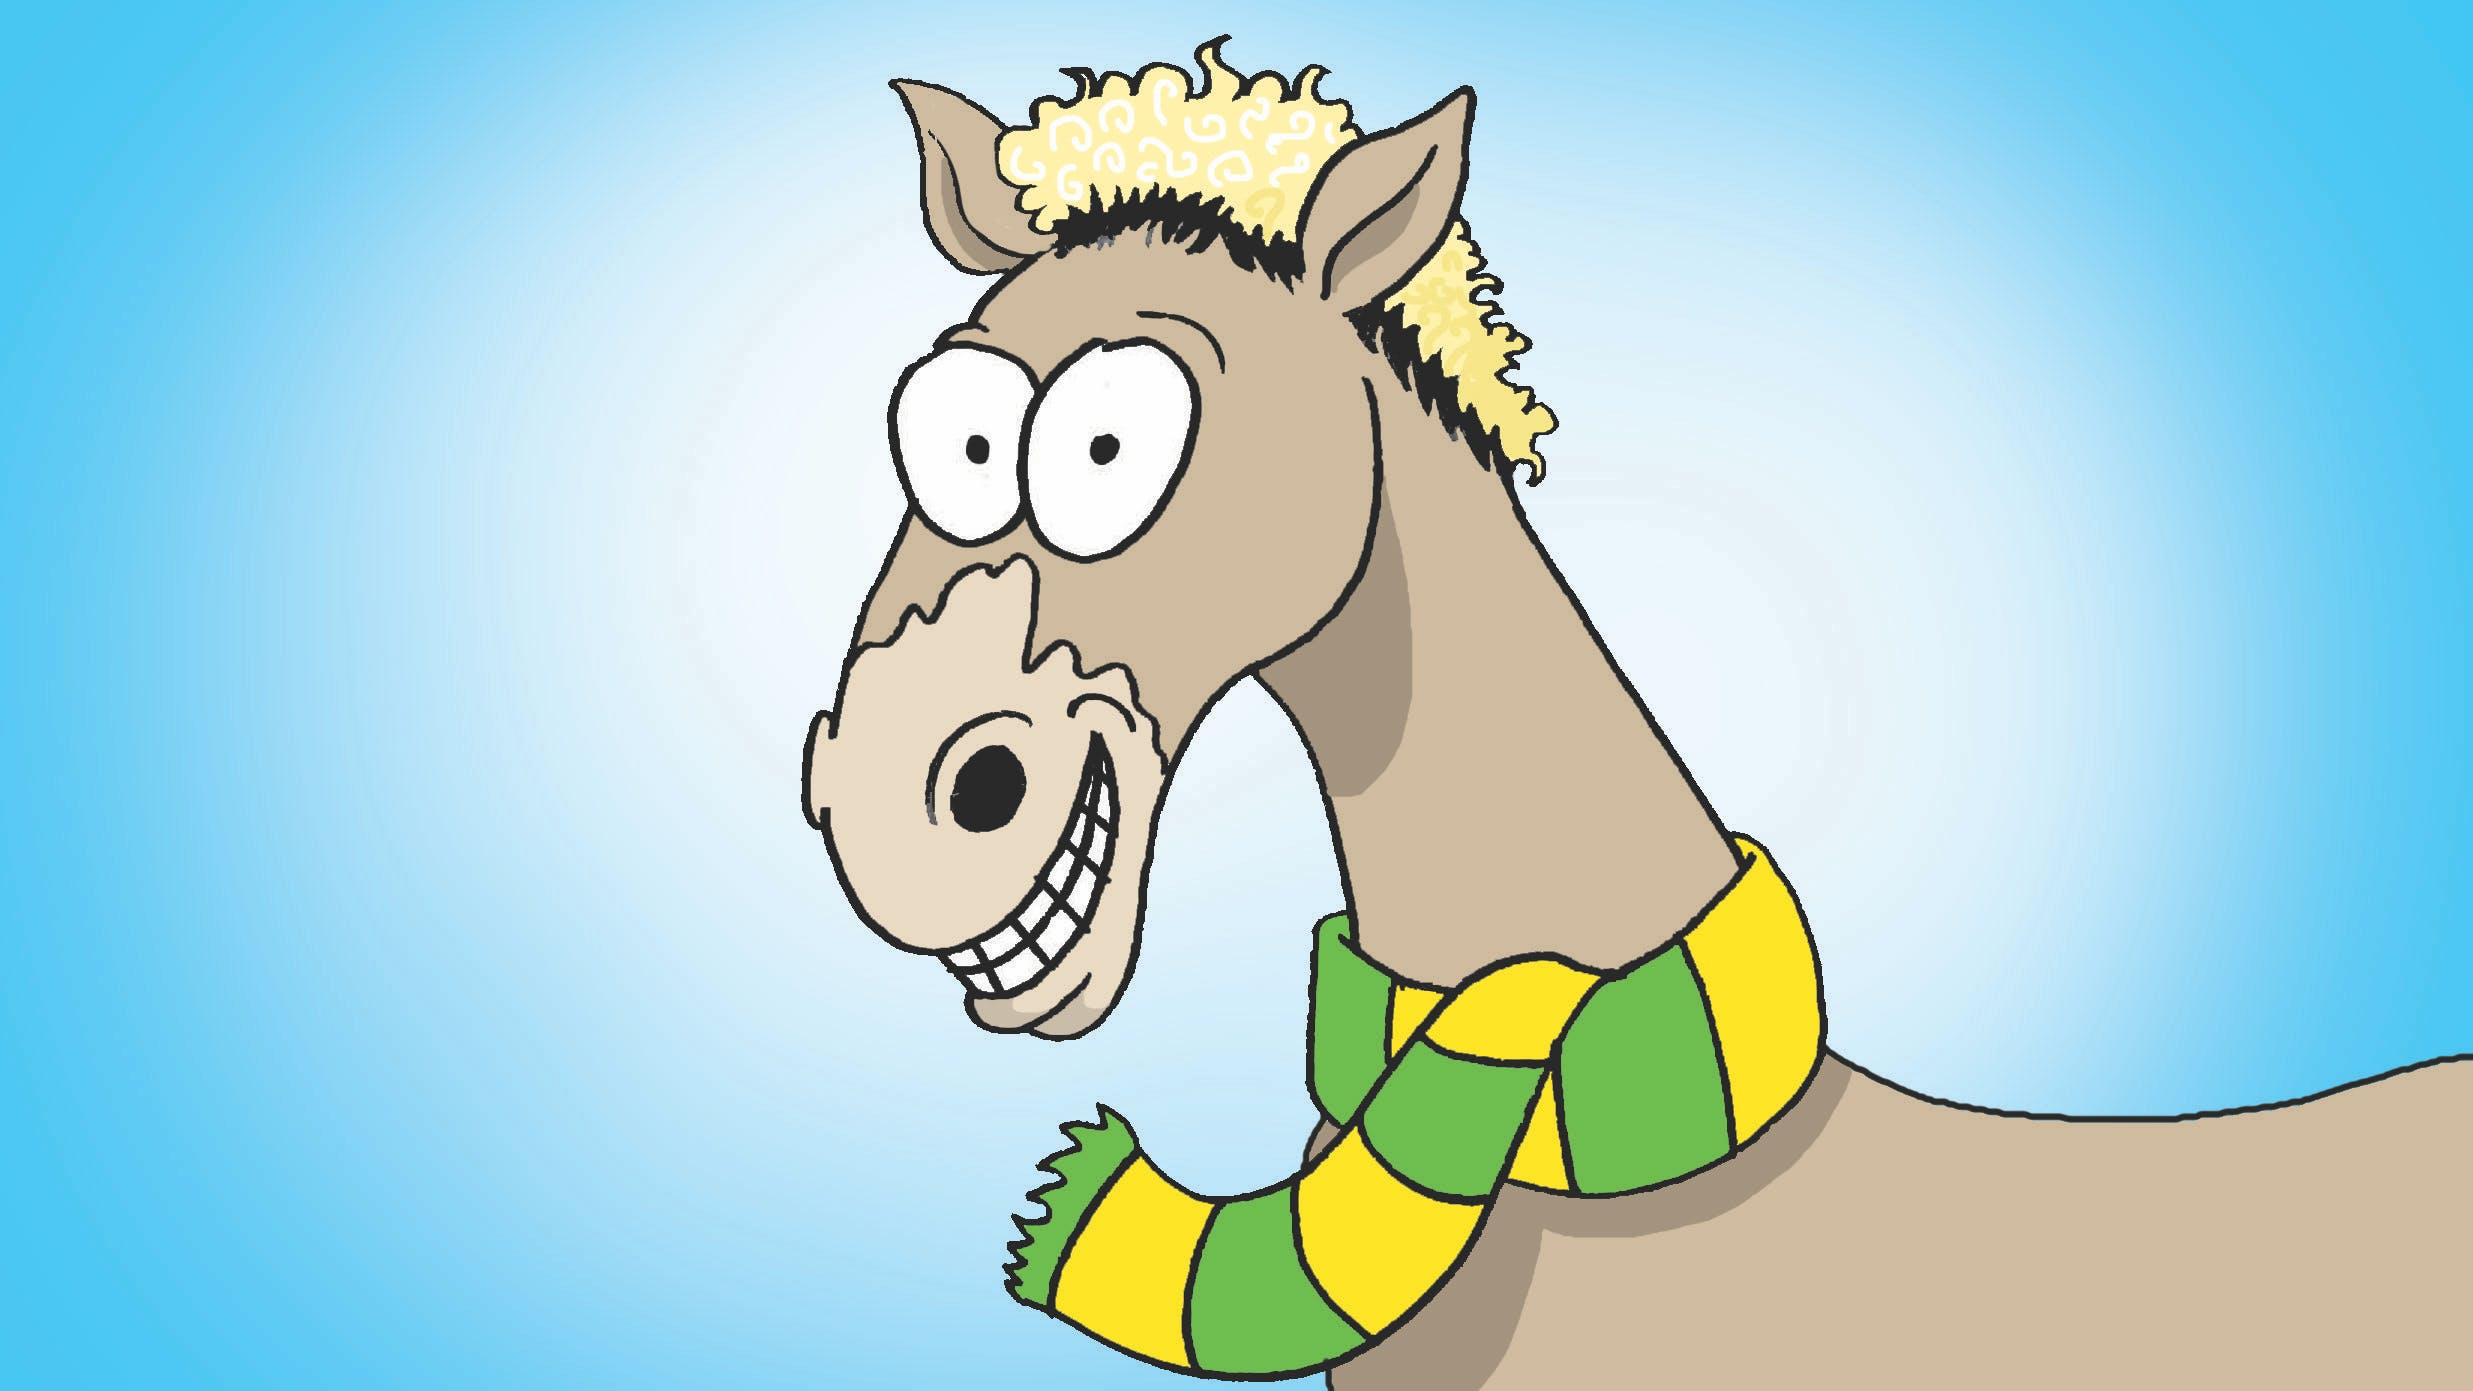 Who was the horse's favourite footballer? - It's Neymar NEIGH-mar!